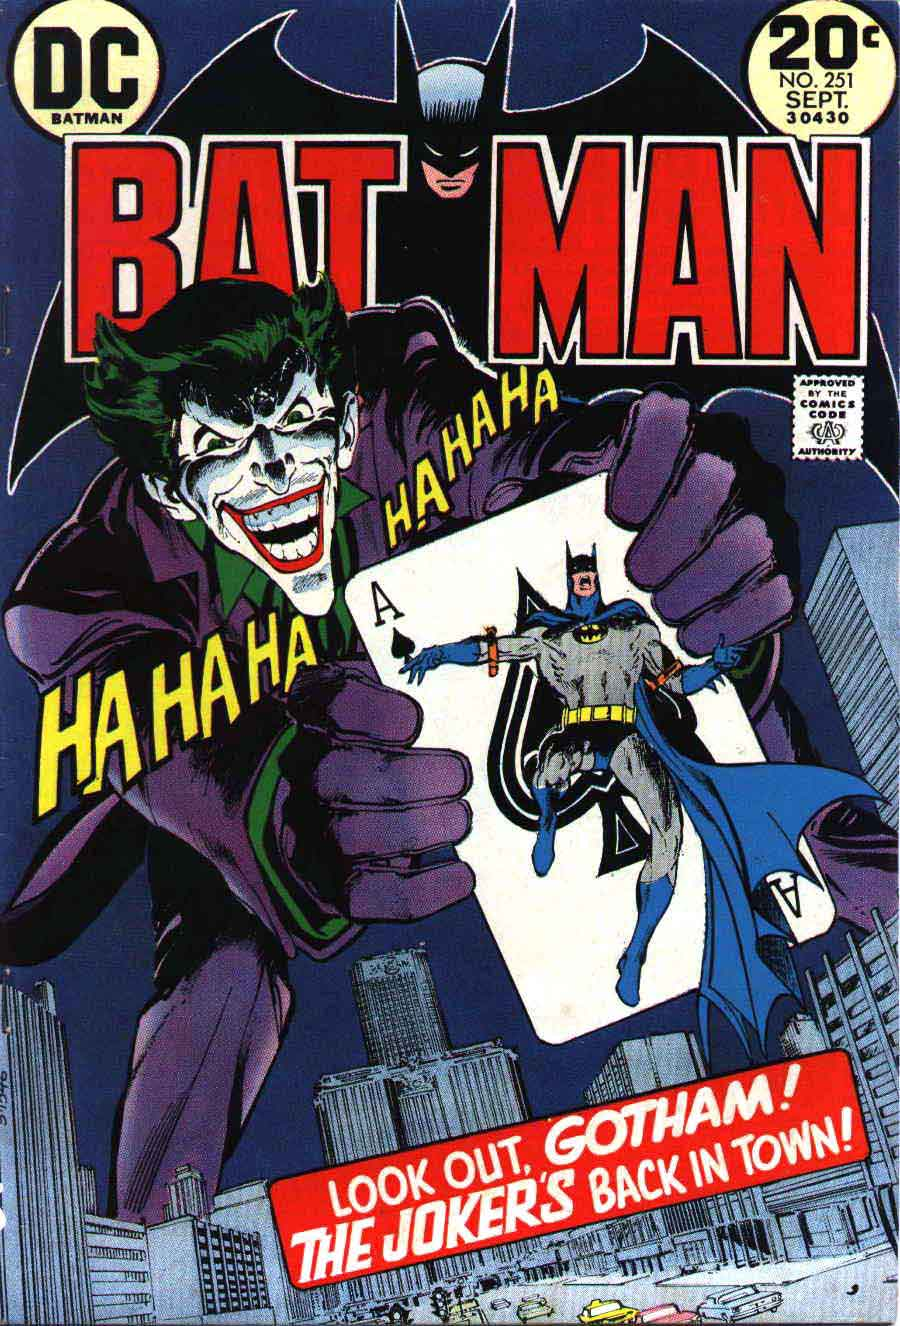 Batman v1 #251 dc comic book cover art by Neal Adams